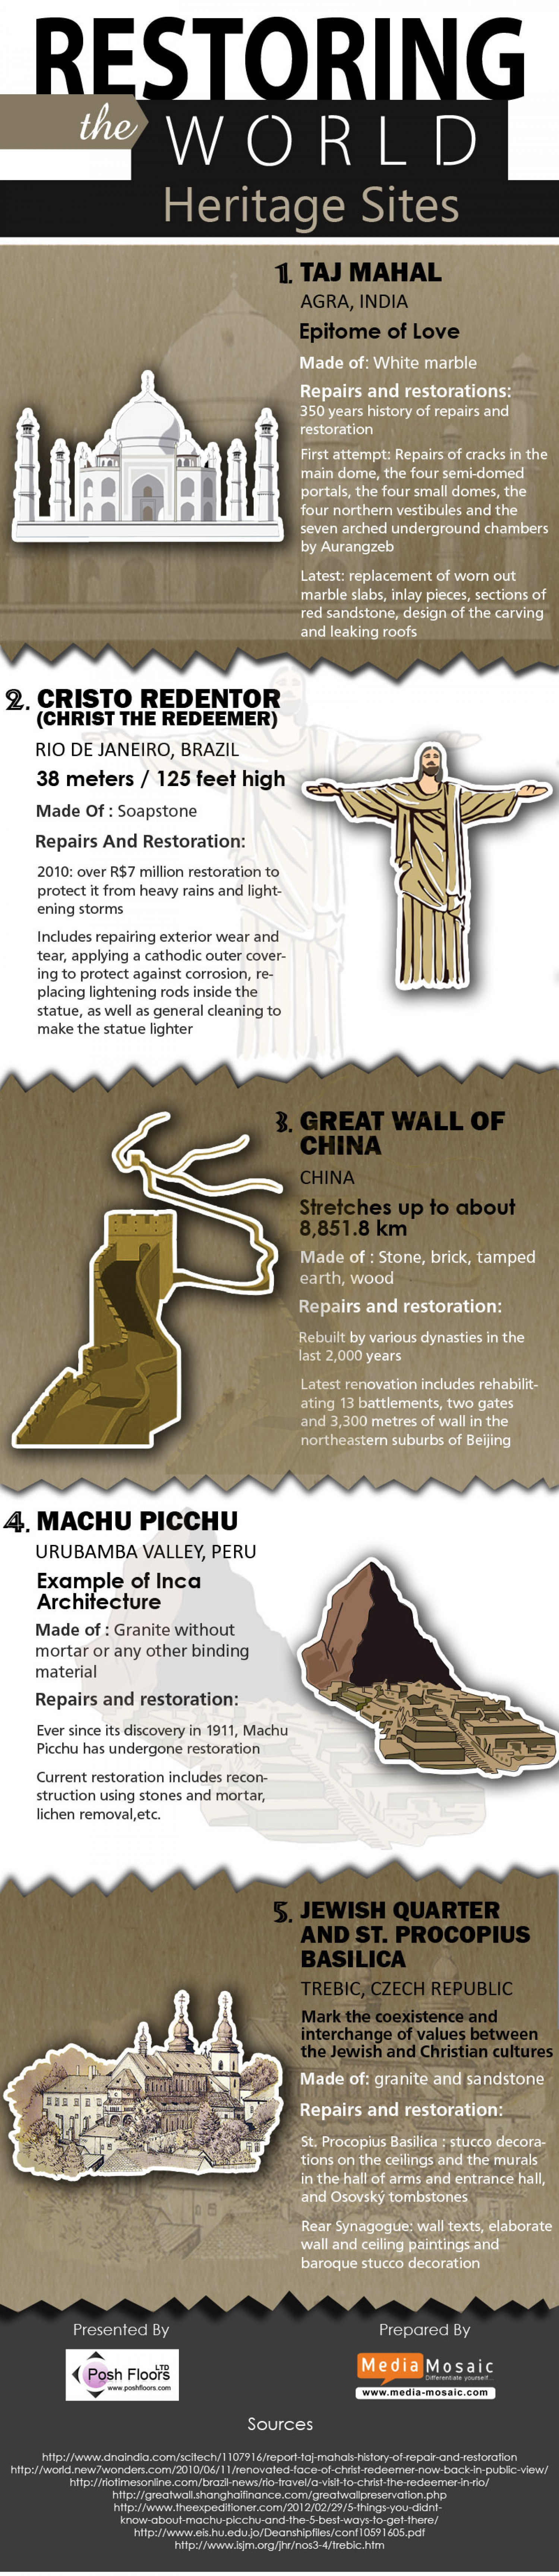 Restoring The World Heritage Sites Infographic